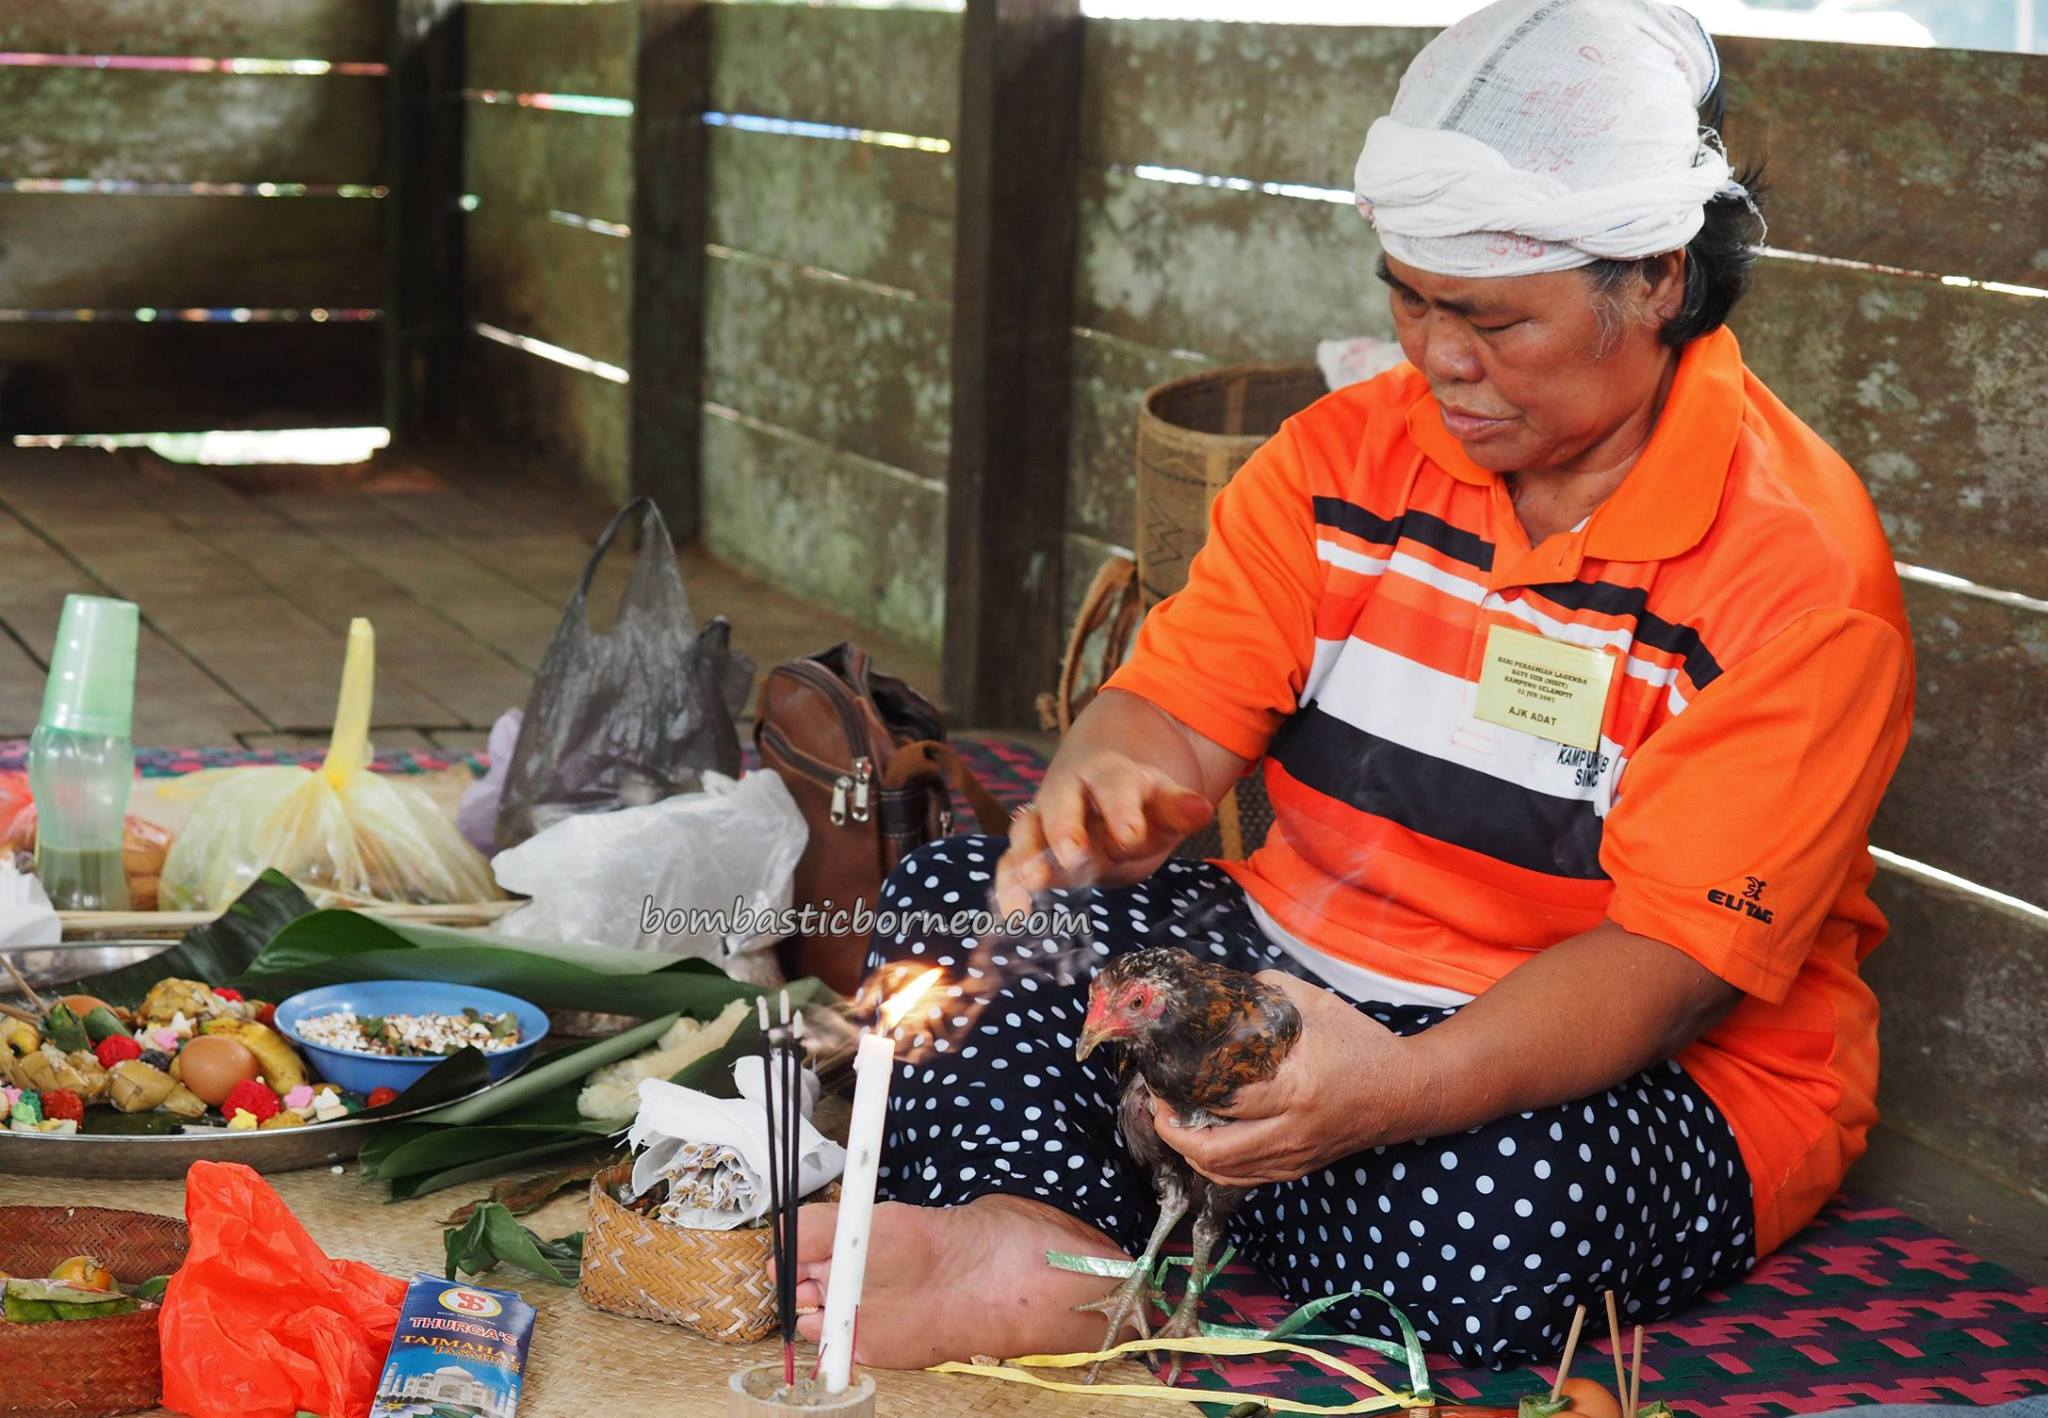 Pesta Batu Si'ib, Kampung Selampit, ritual, Gawai Harvest Festival, authentic, traditional, culture, Borneo, Lundu, Sarawak, Dayak Bidayuh, native, tribal, Tourist attraction, travel guide, transborder,